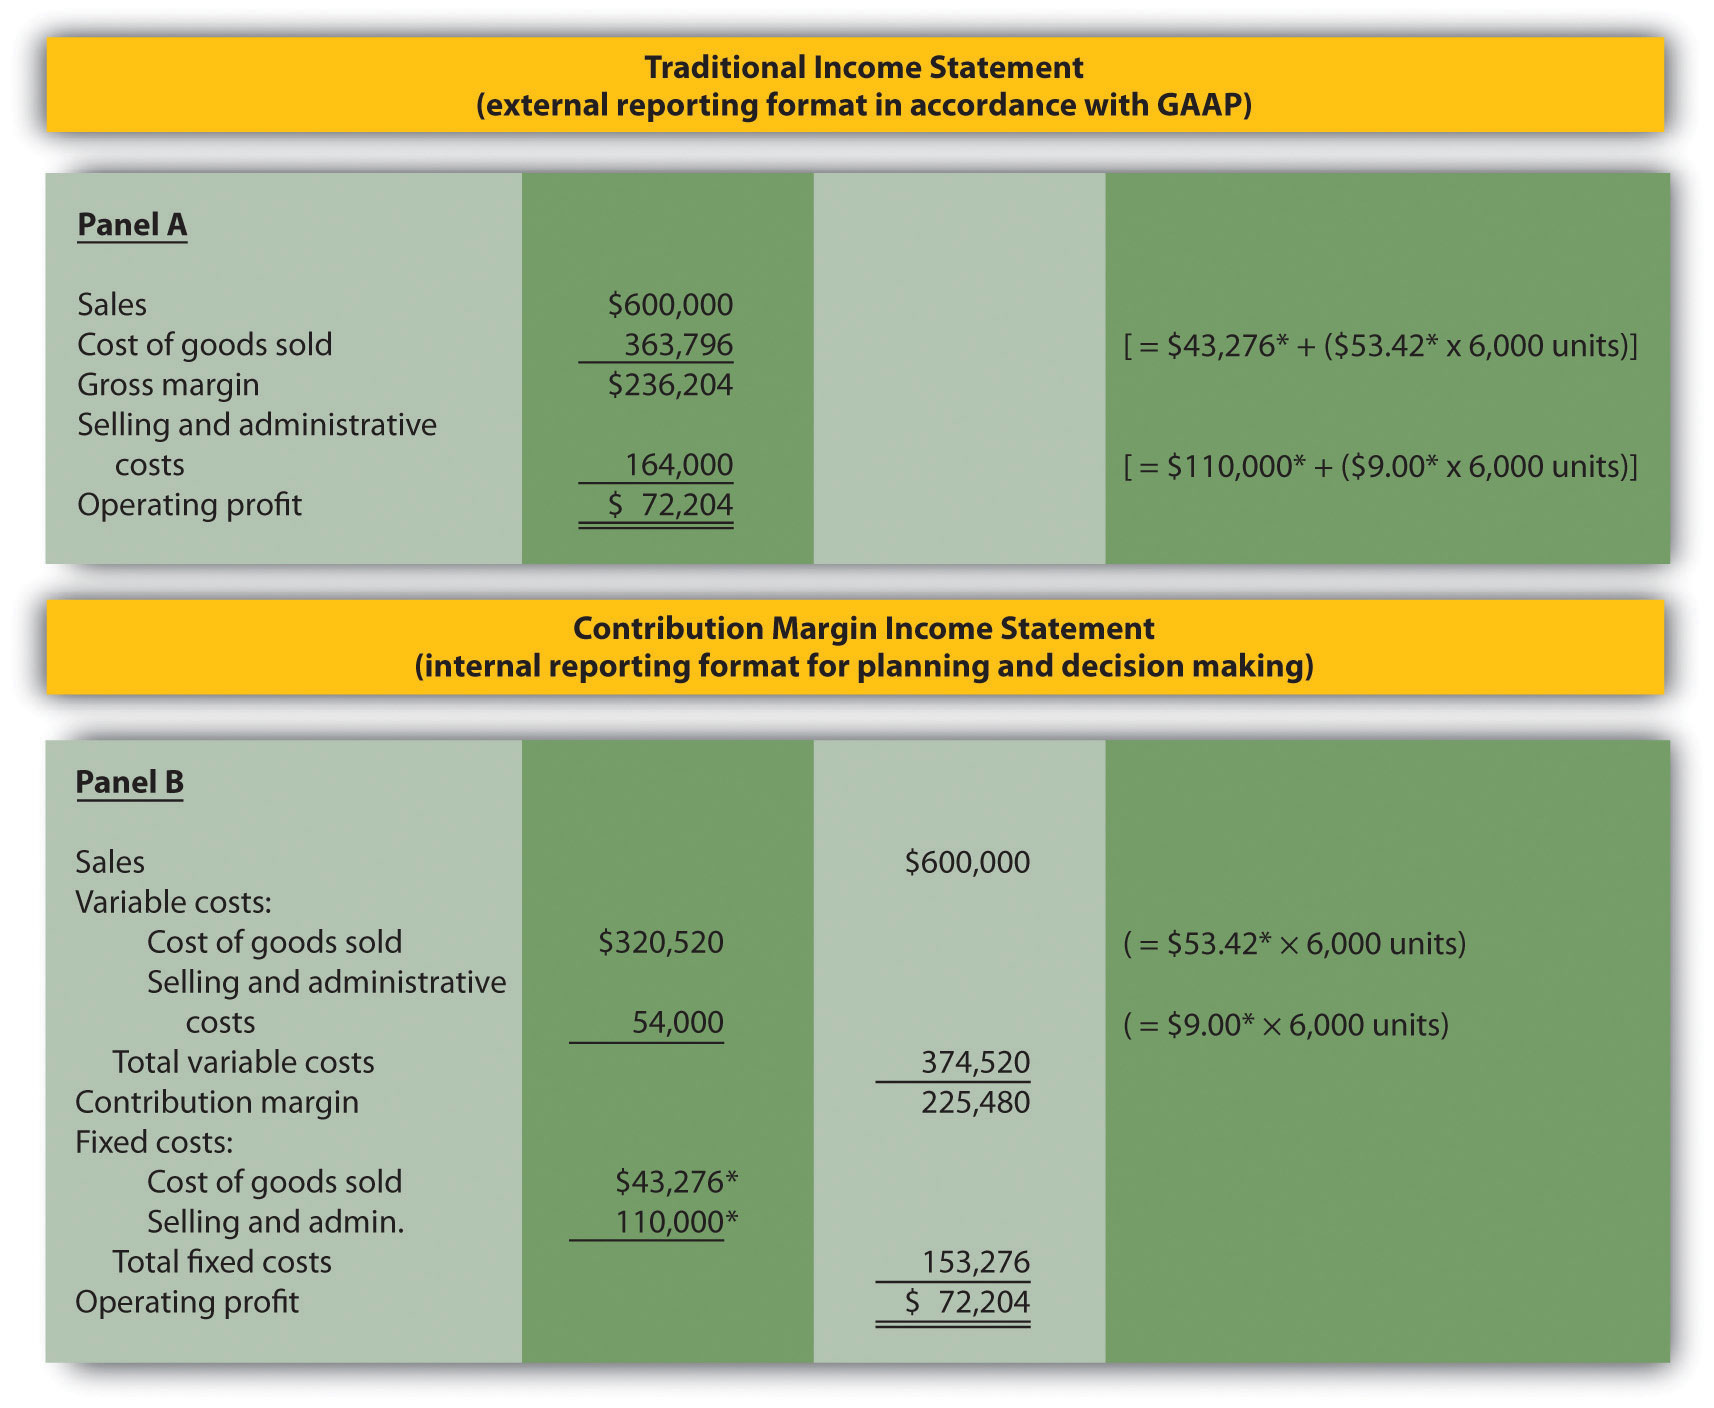 Figure 5.7 presents an example of a contribution margin income statement.